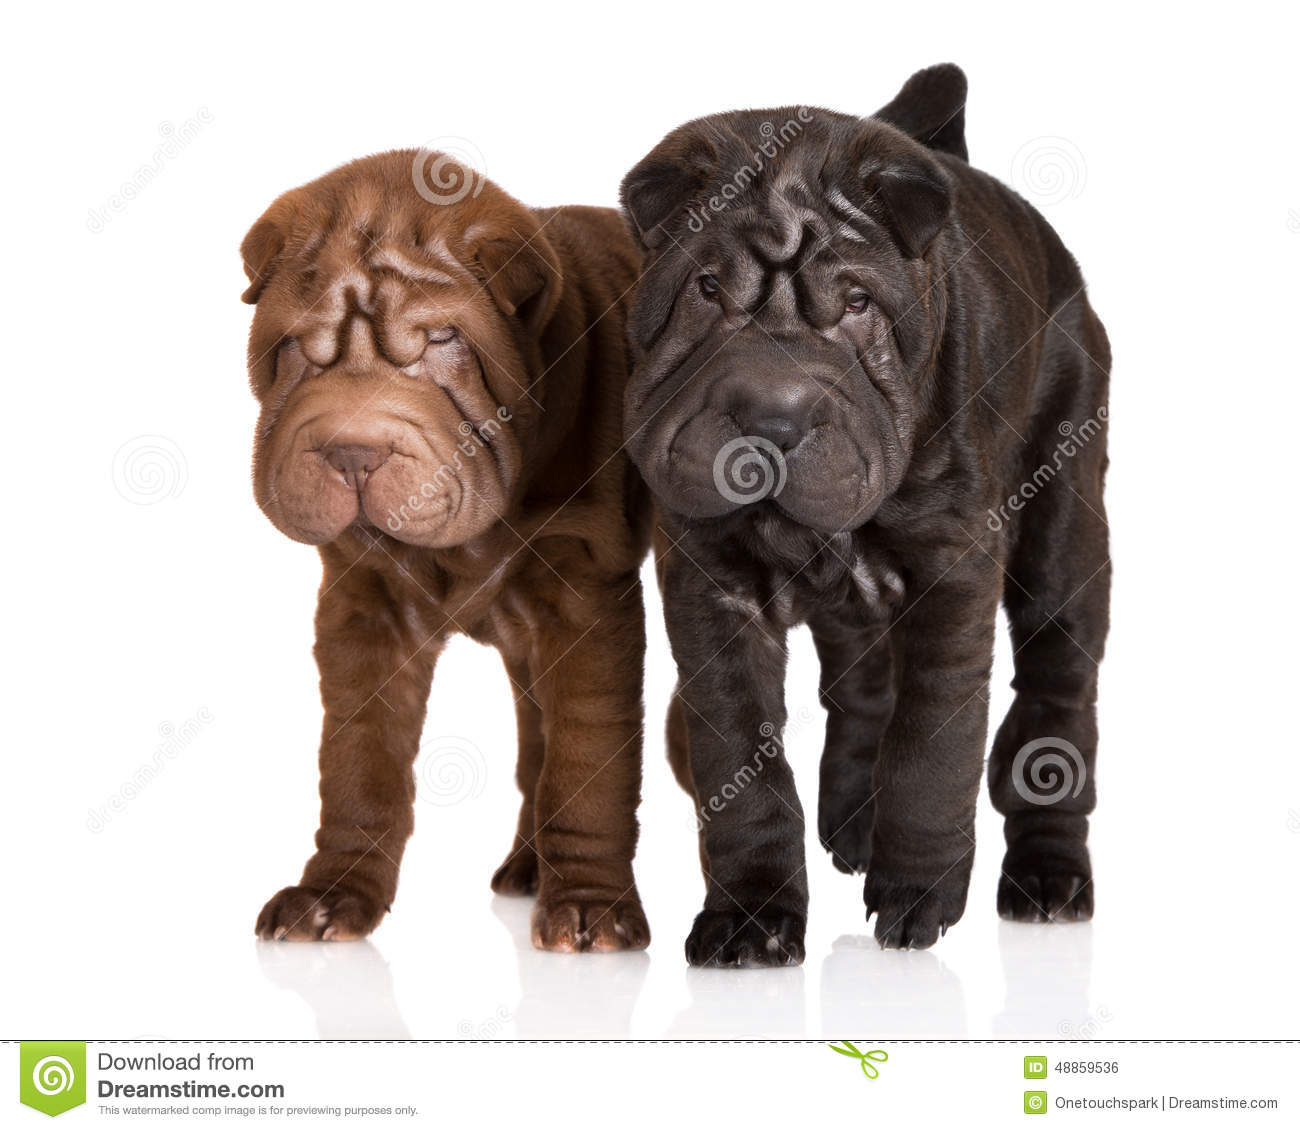 Puppies sharpei two